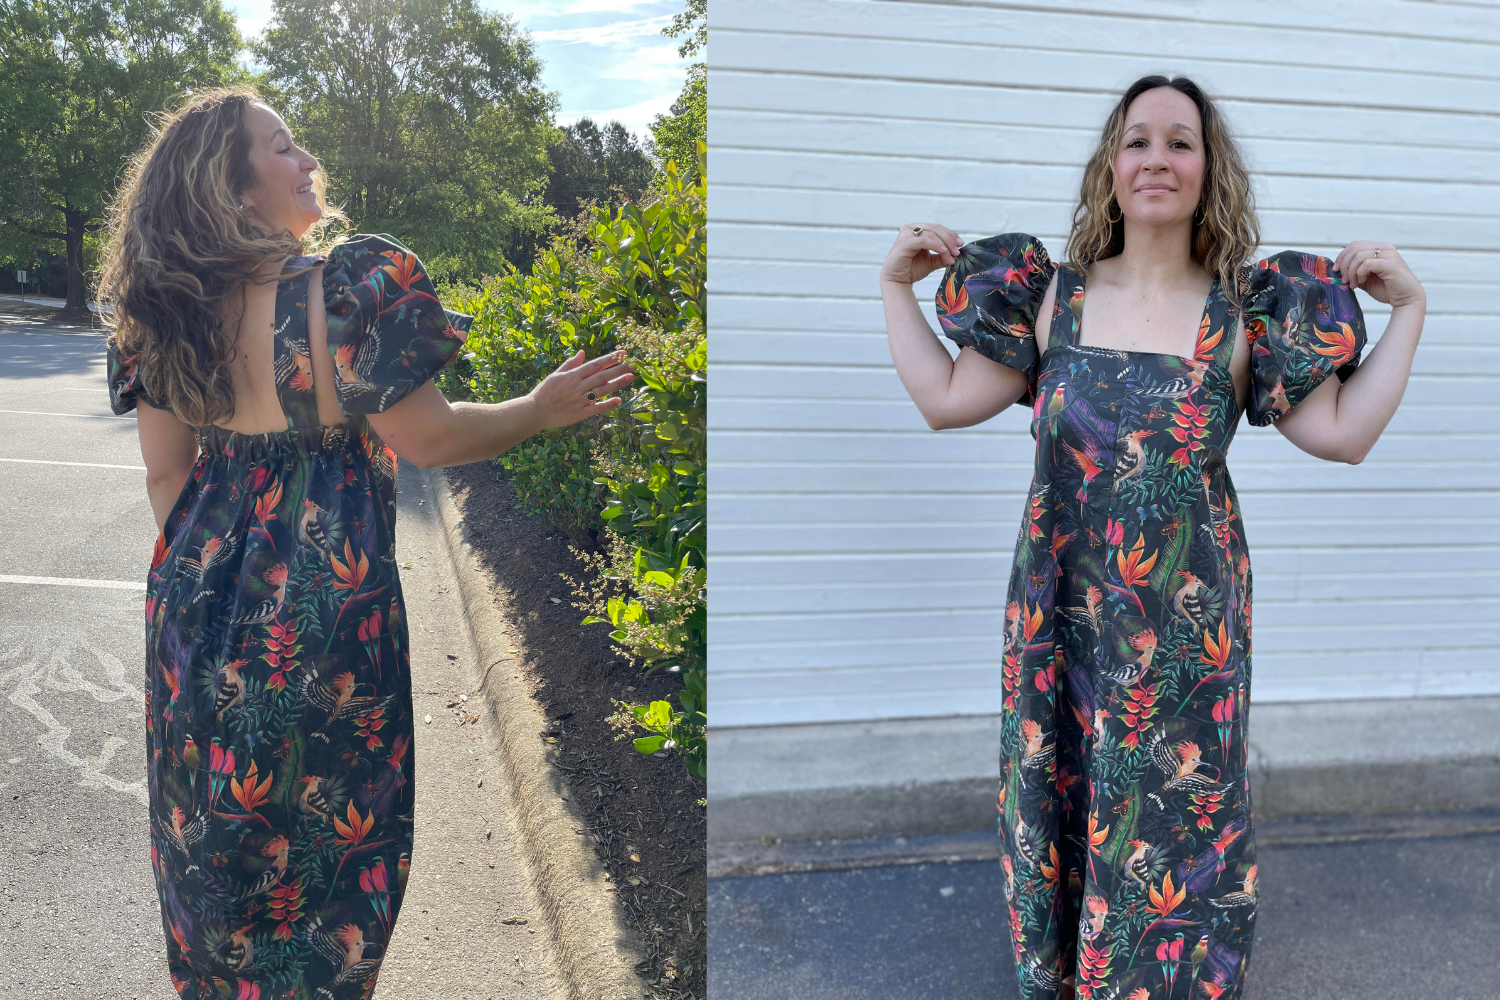 Model wearing dark floral dress with puffed short sleeves